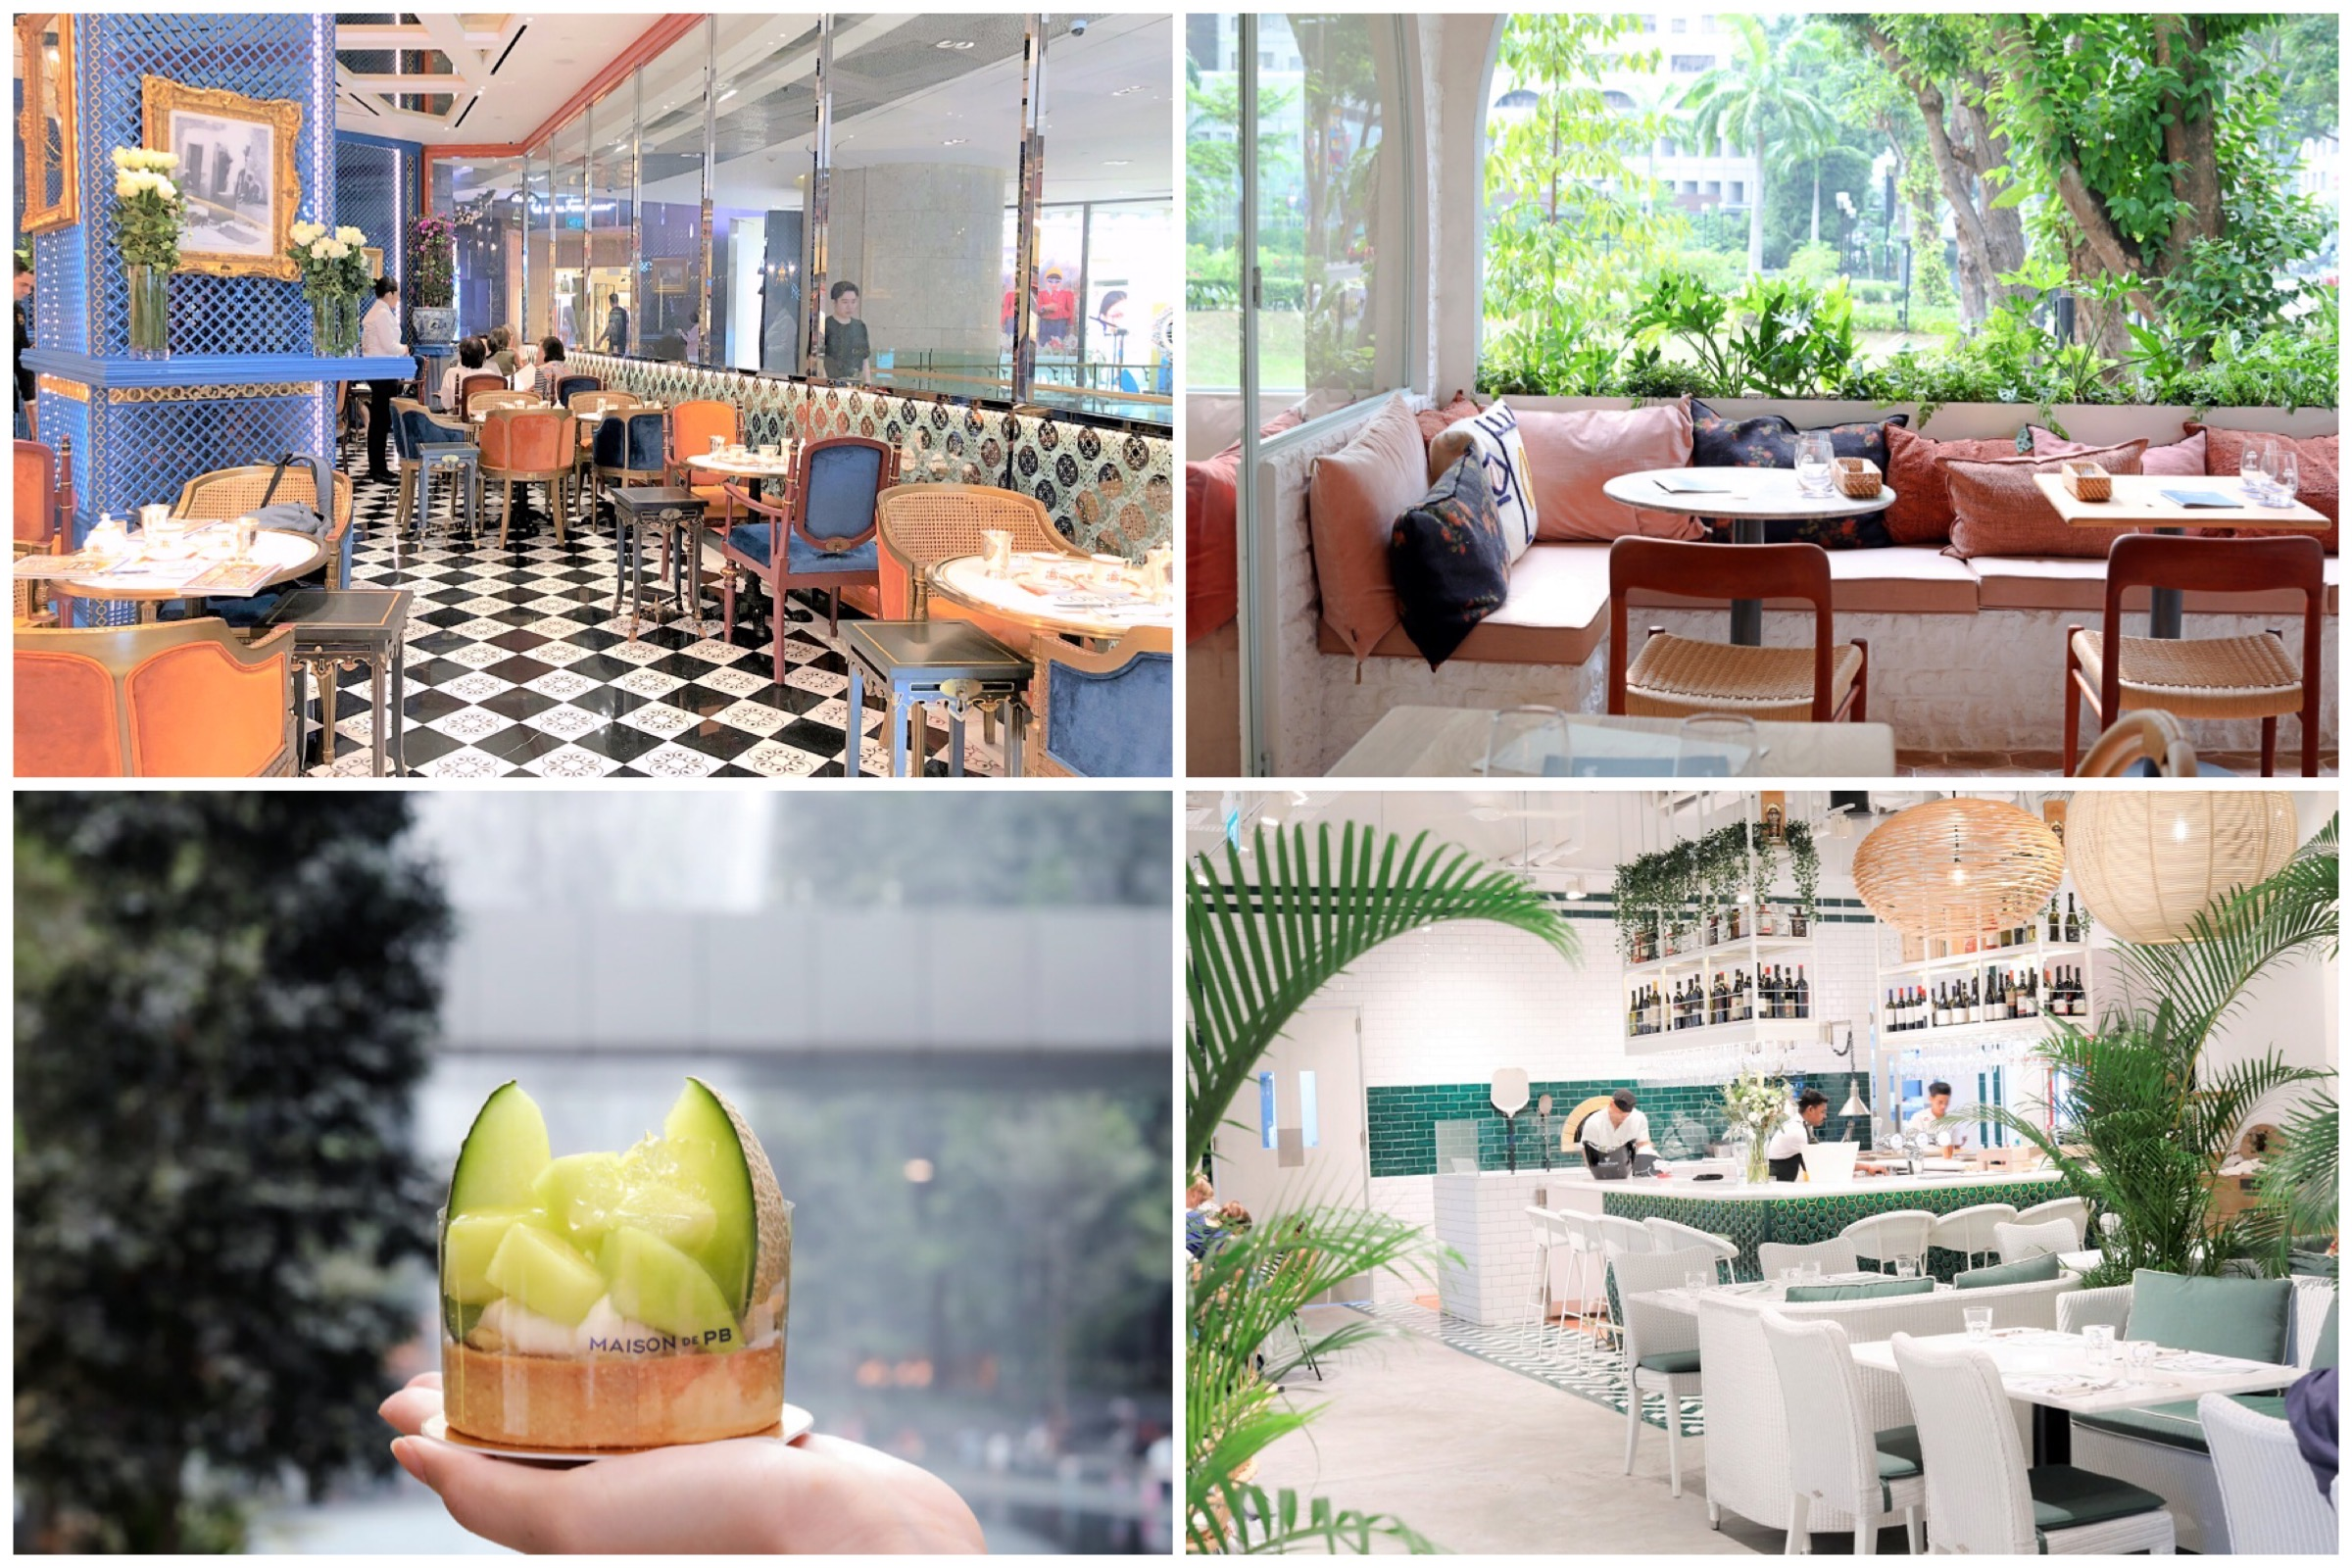 15 Most Instagrammable Cafes In Singapore 2019 Moroccan Coffeehouse Japanese Zen Teahouse At Orchard Bubble Waffle Cafe From Osaka Danielfooddiary Com